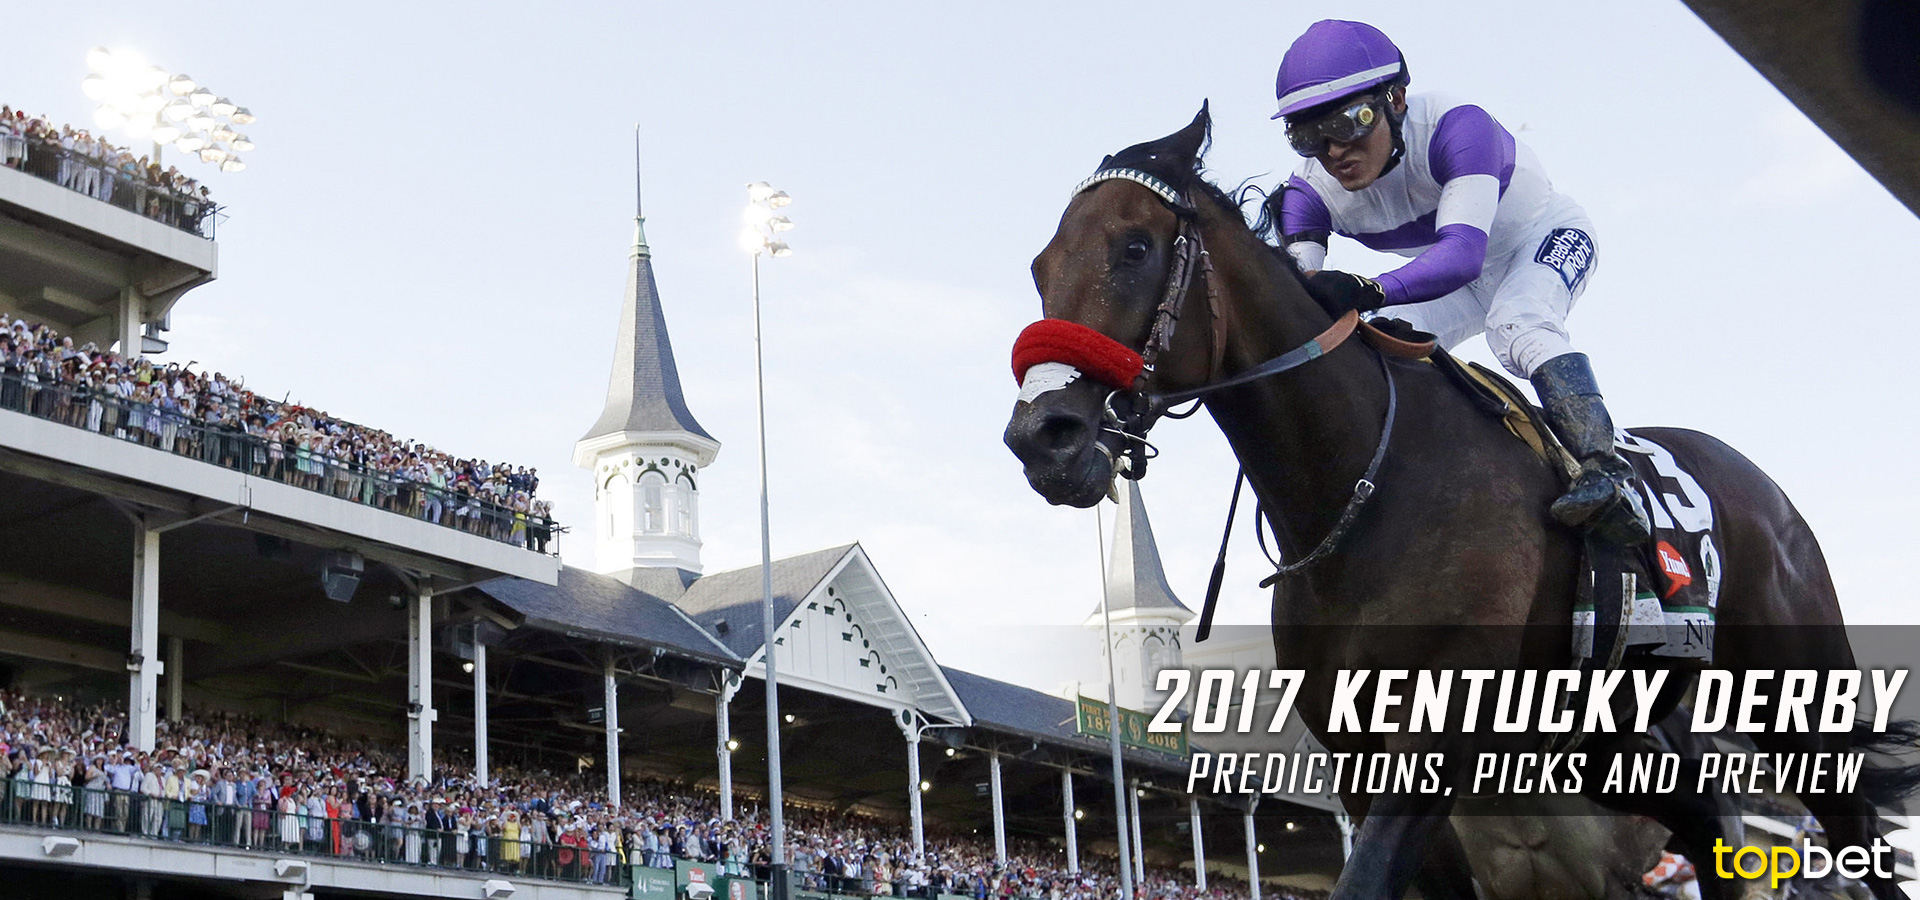 2017 kentucky derby predictions picks and preview